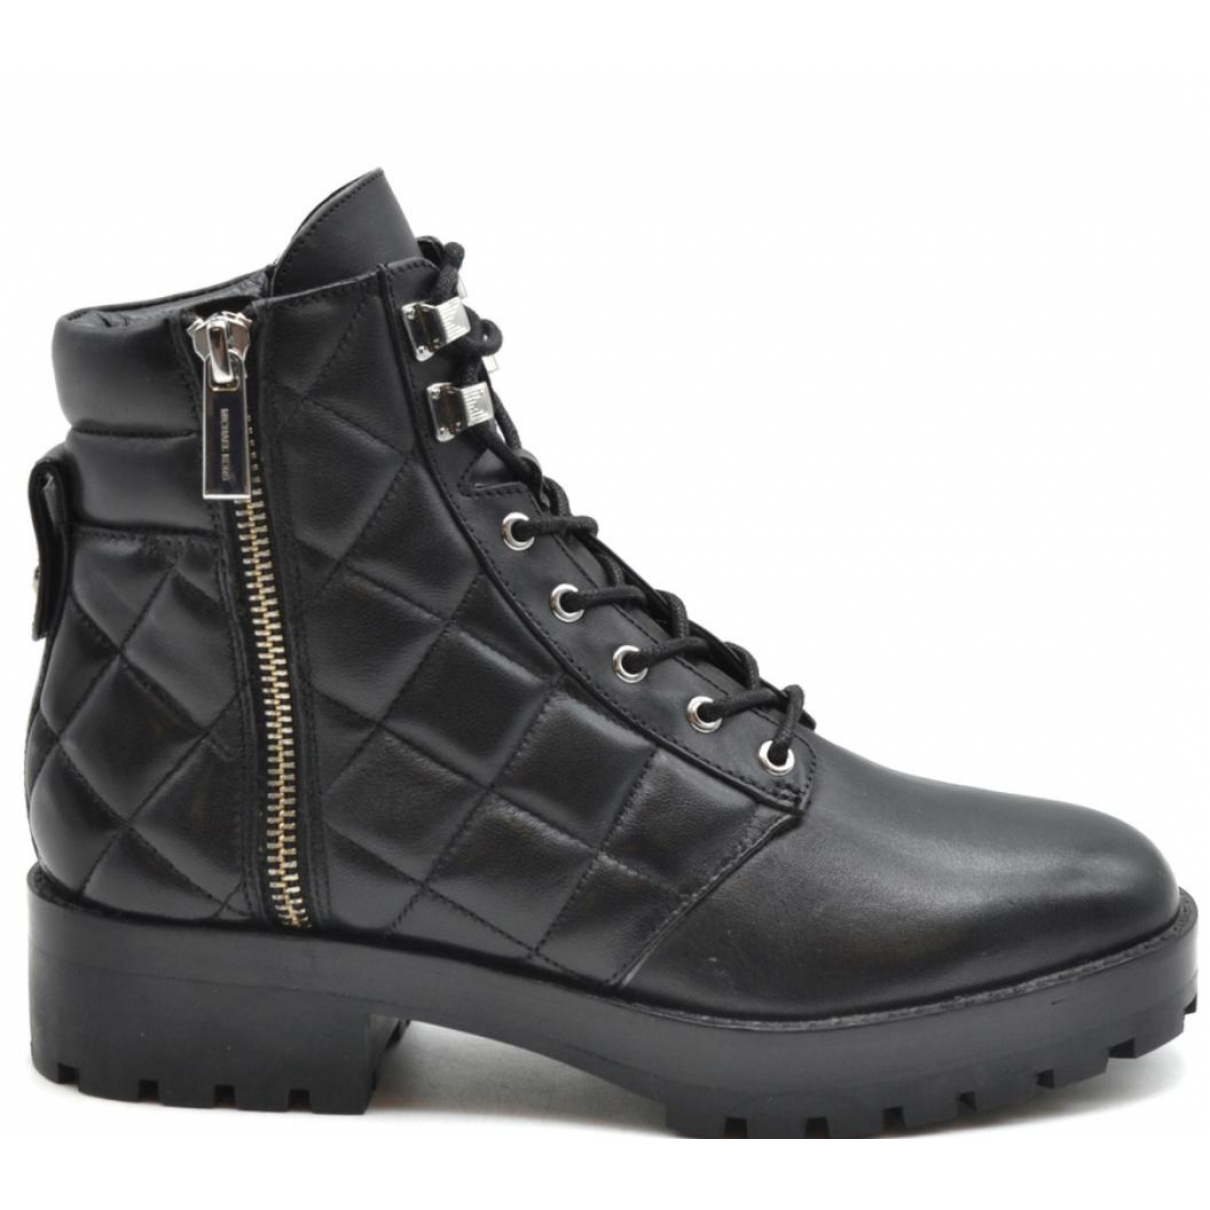 Michael Kors \N Black Leather Ankle boots for Women 38 EU